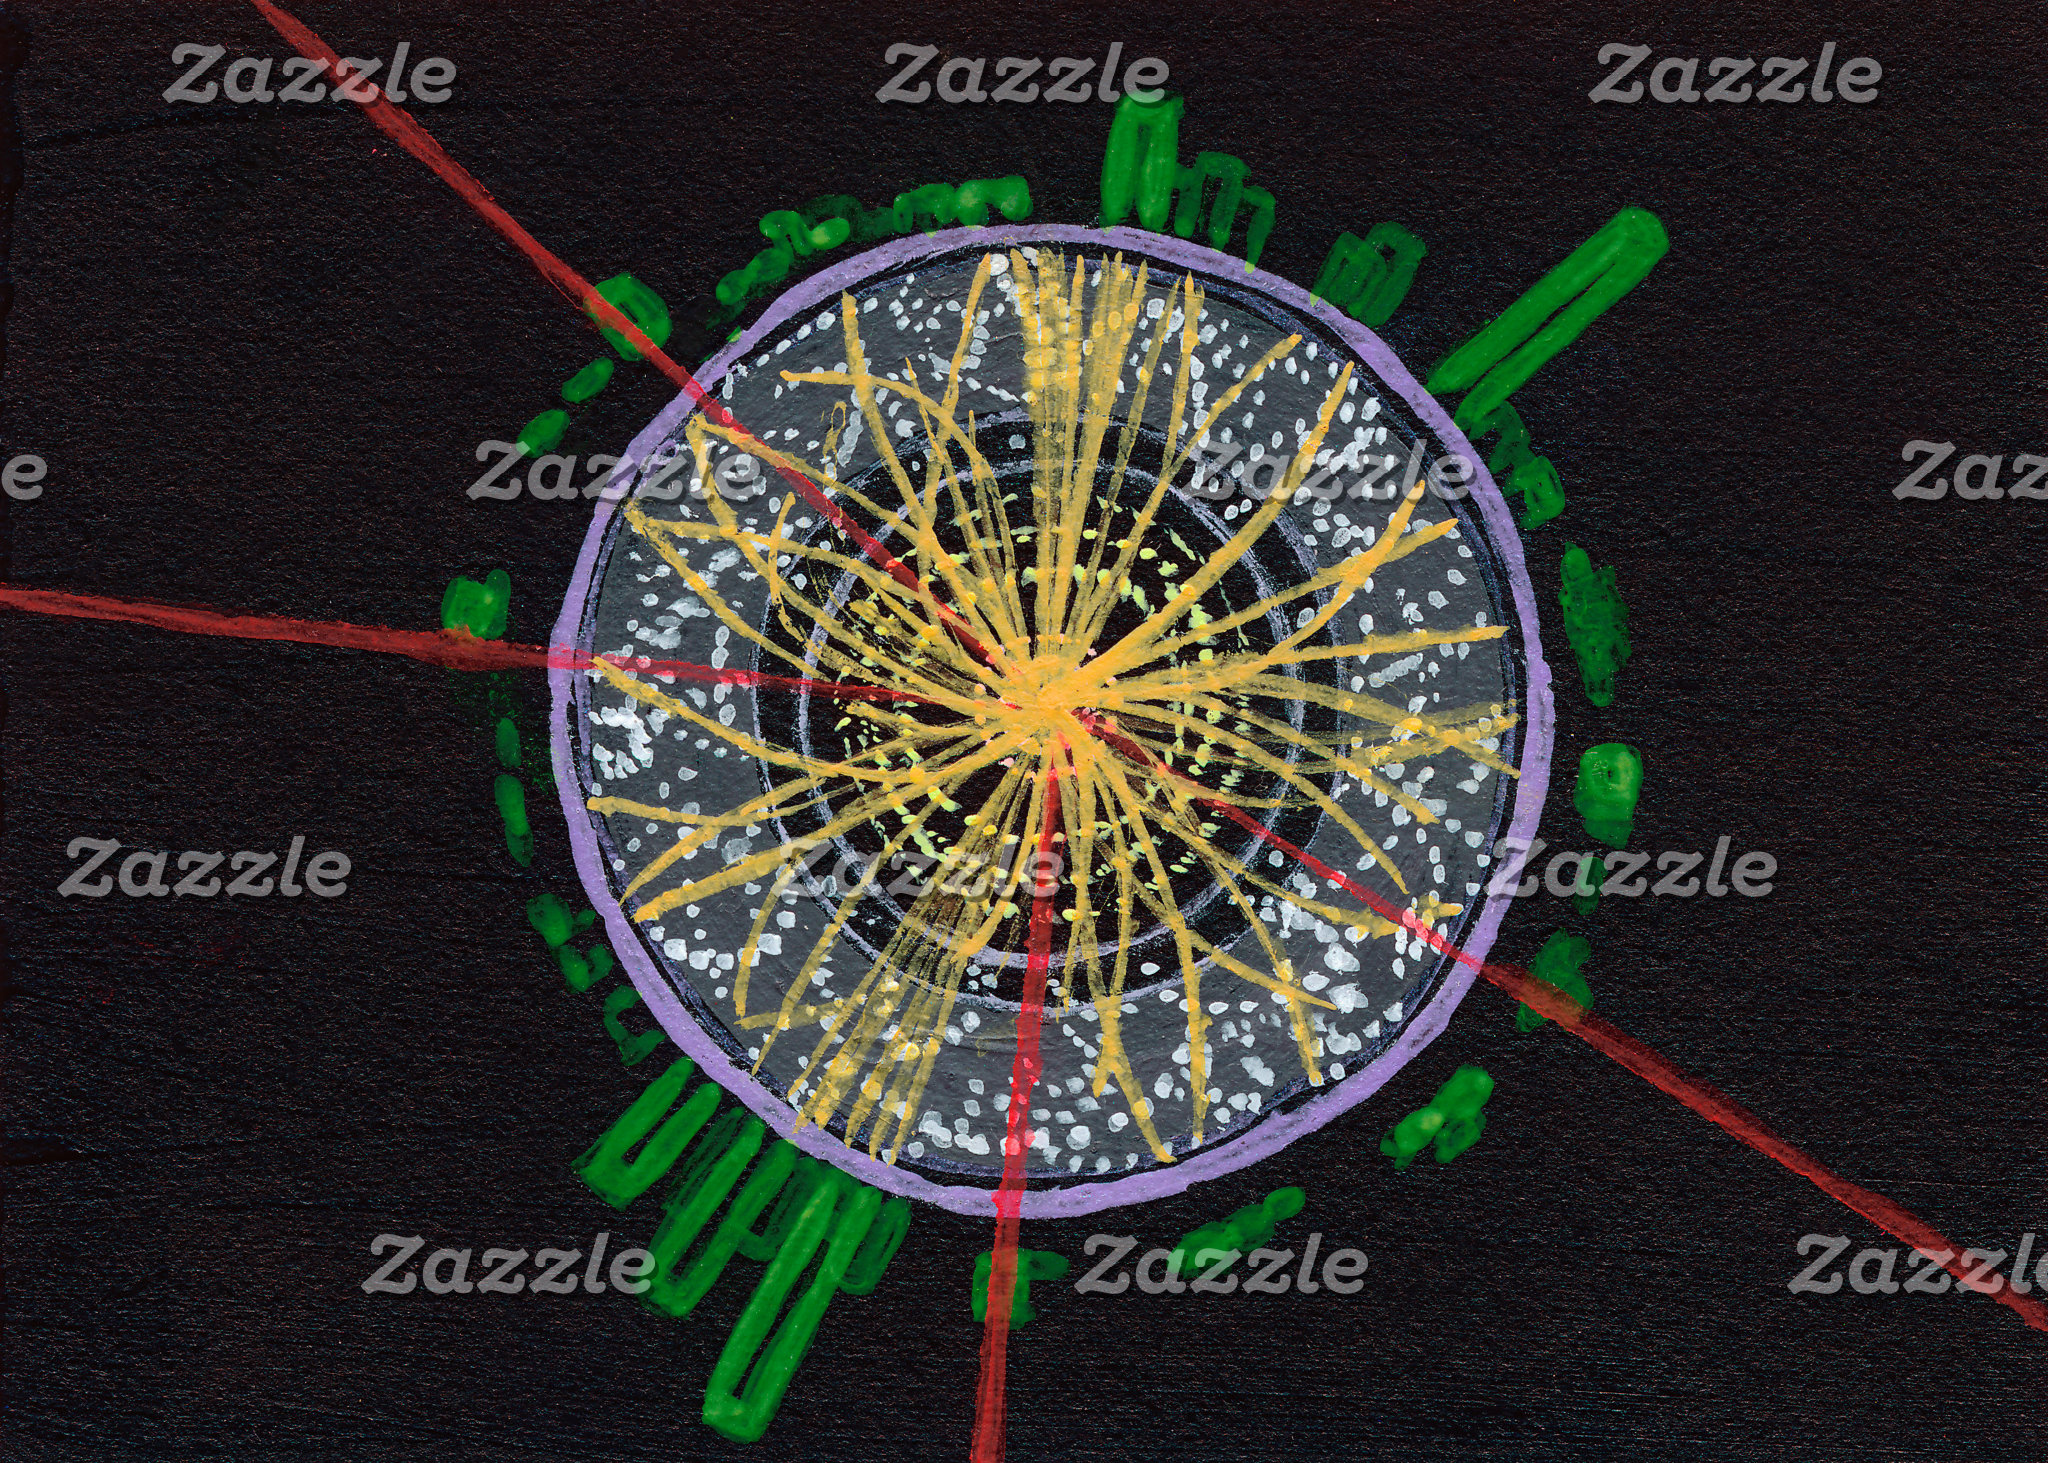 Proton Collisions at the LHC